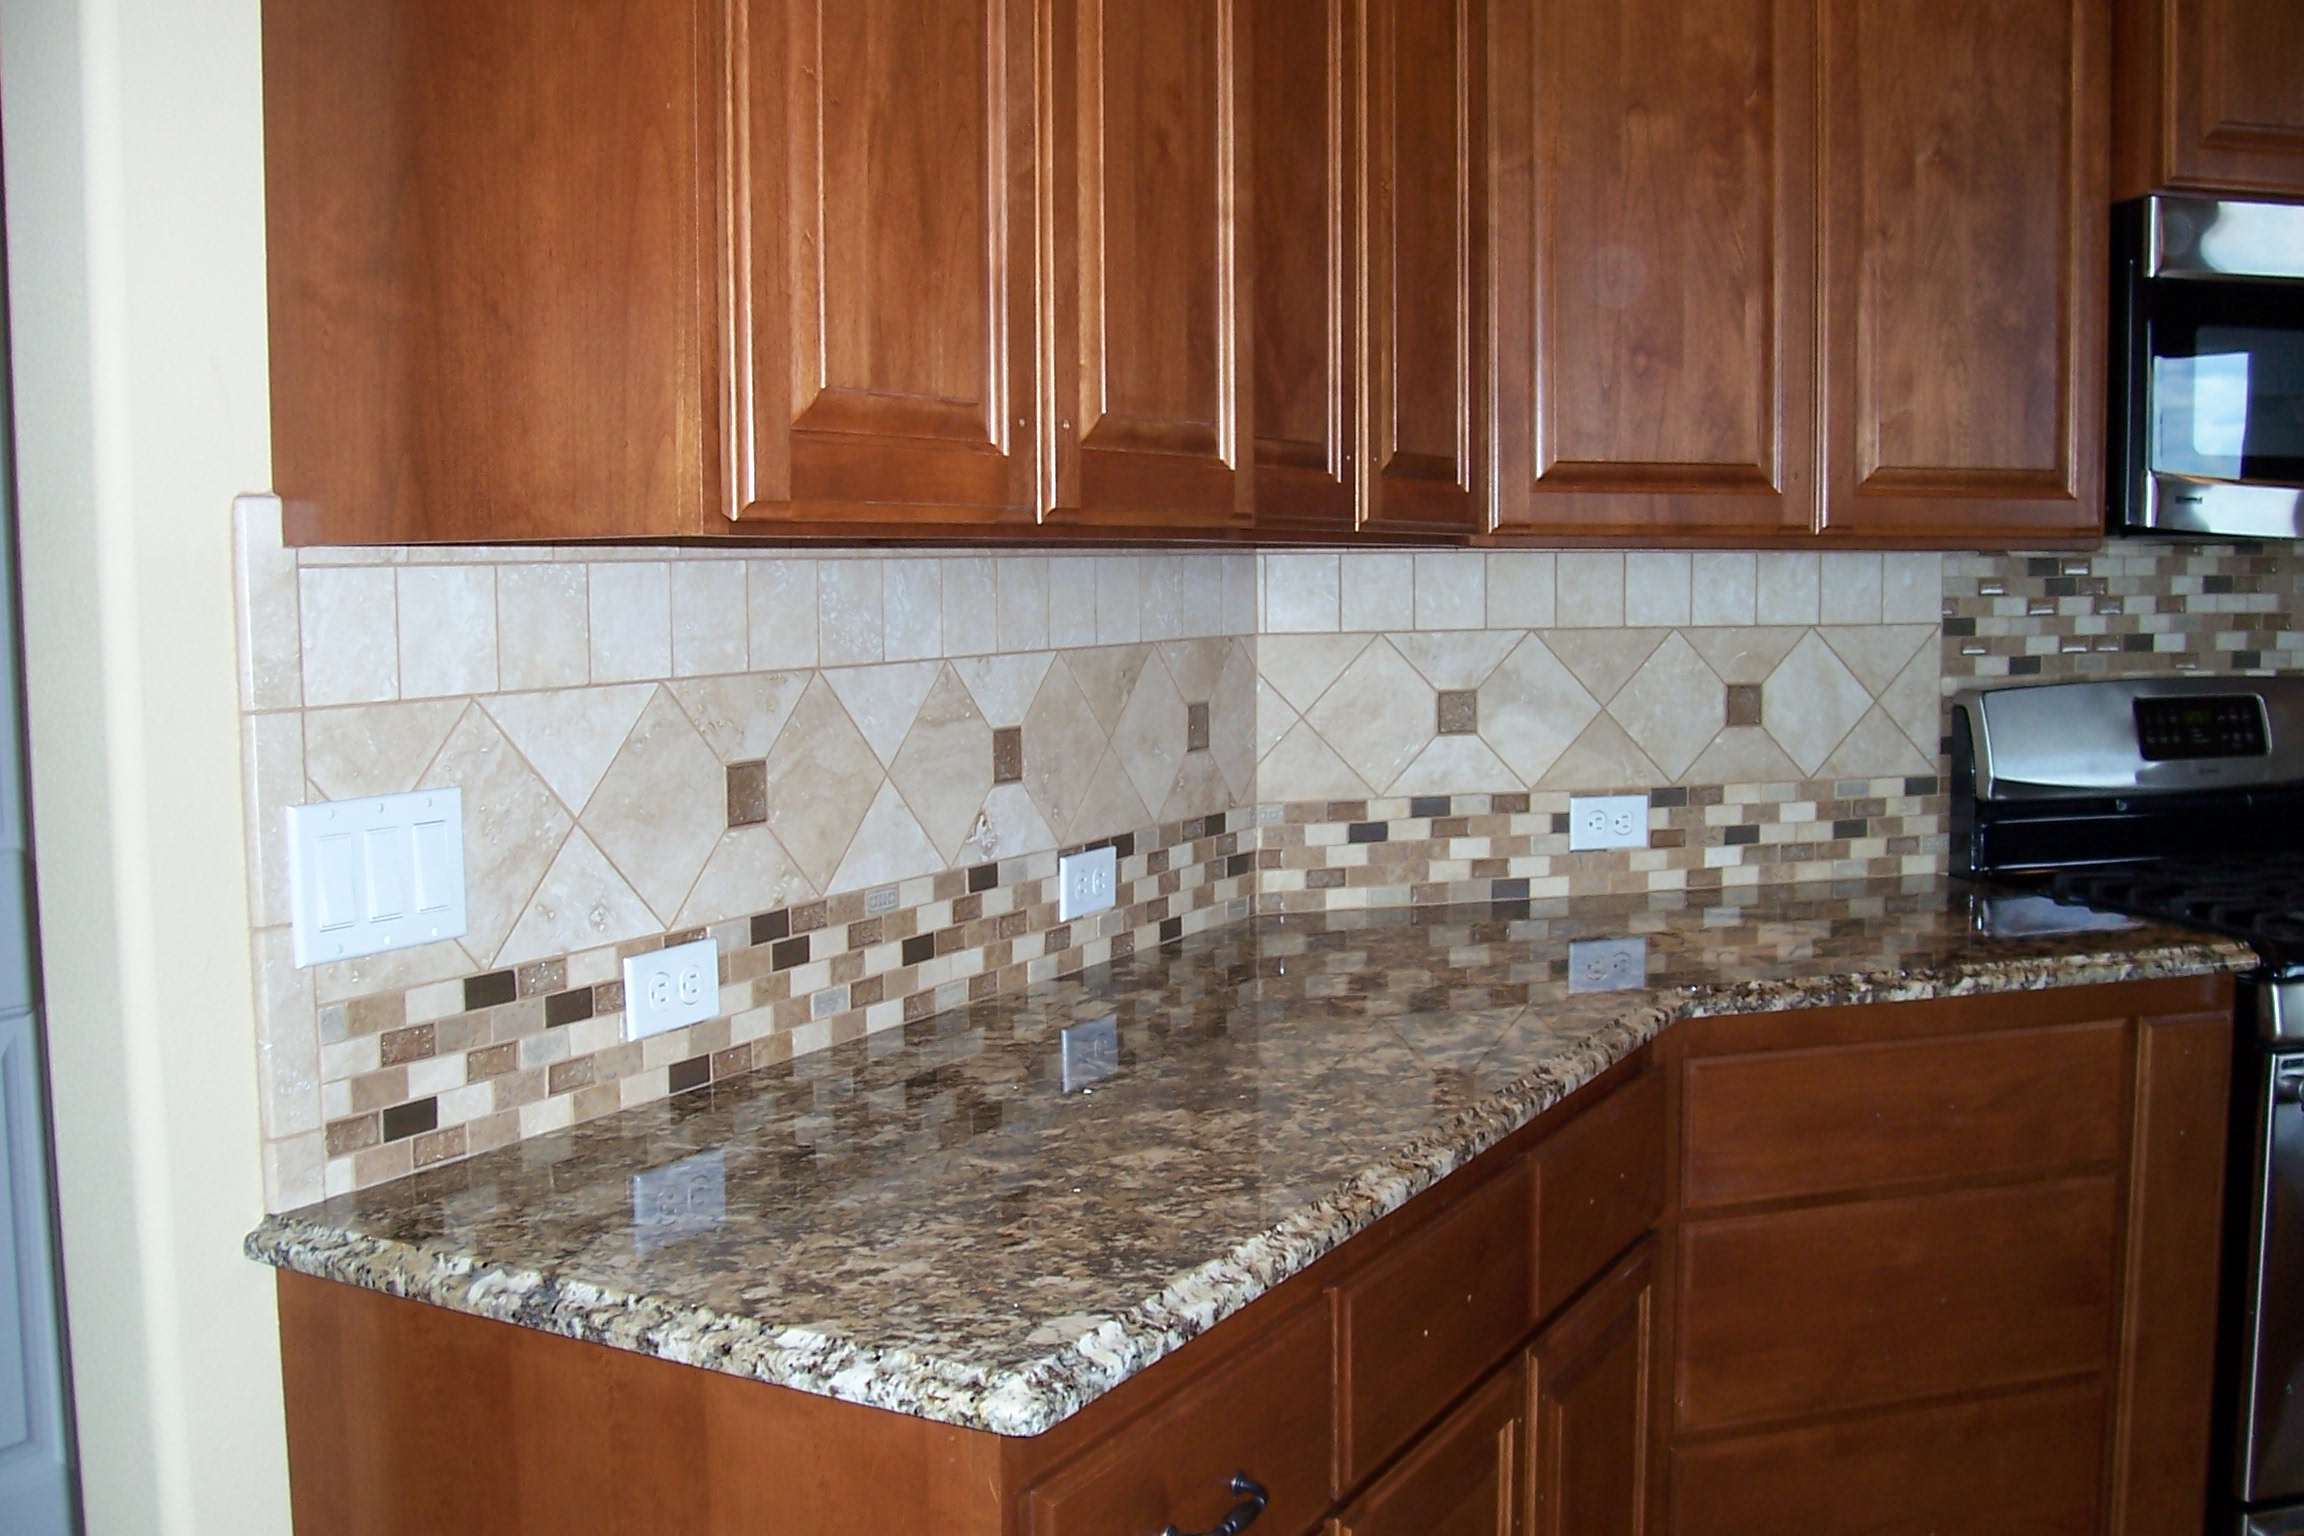 301 moved permanently Kitchen tile design ideas backsplash